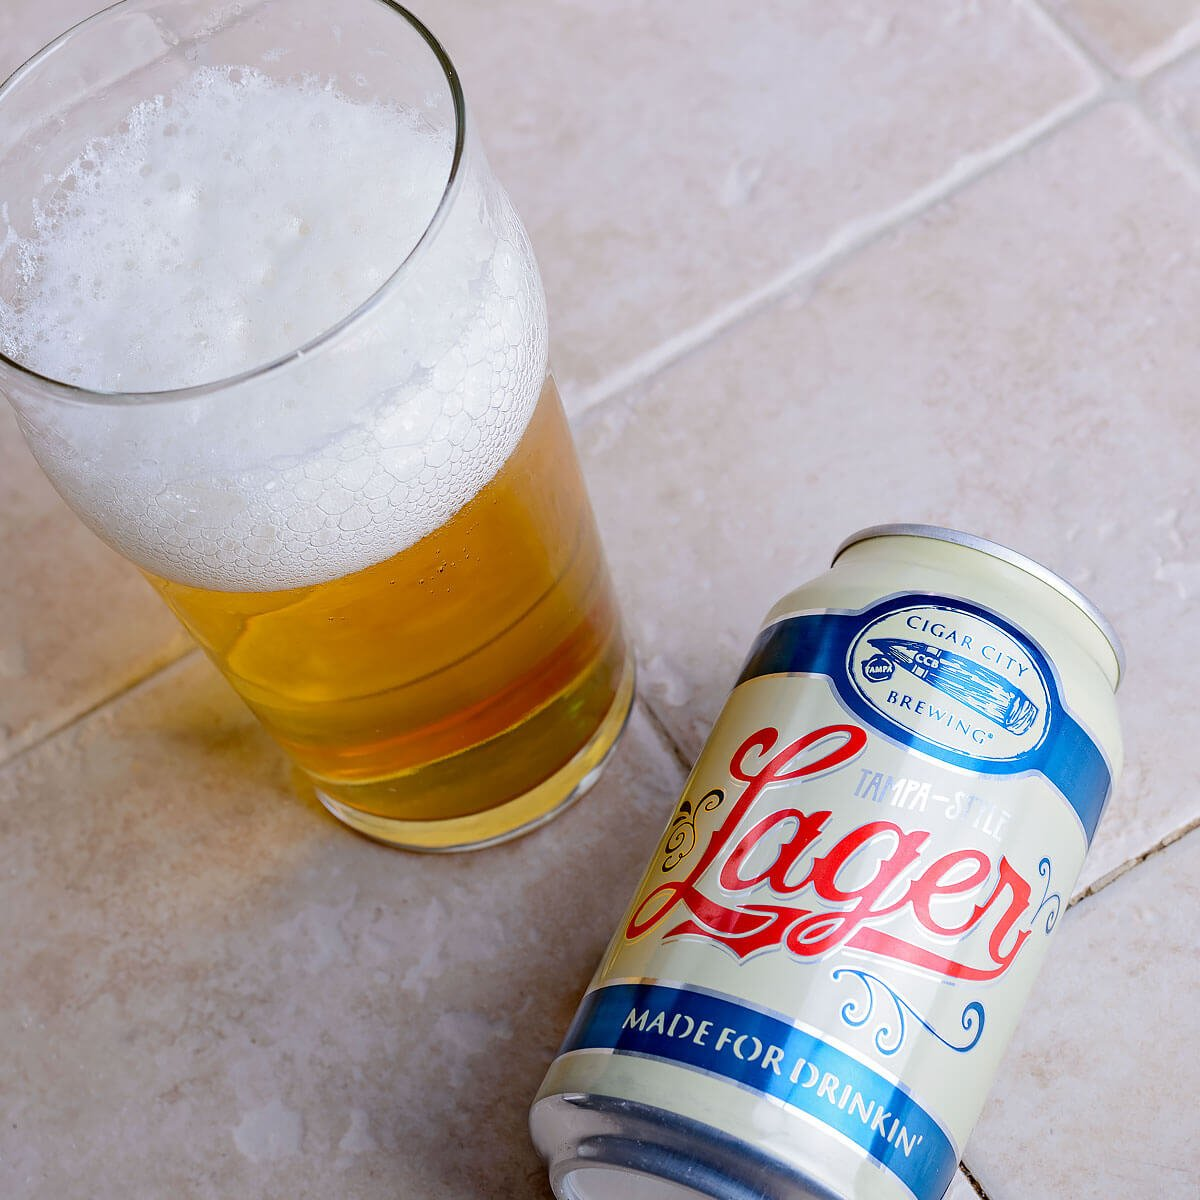 Tampa-Style Lager, a German-style Munich Helles Lager by Cigar City Brewing